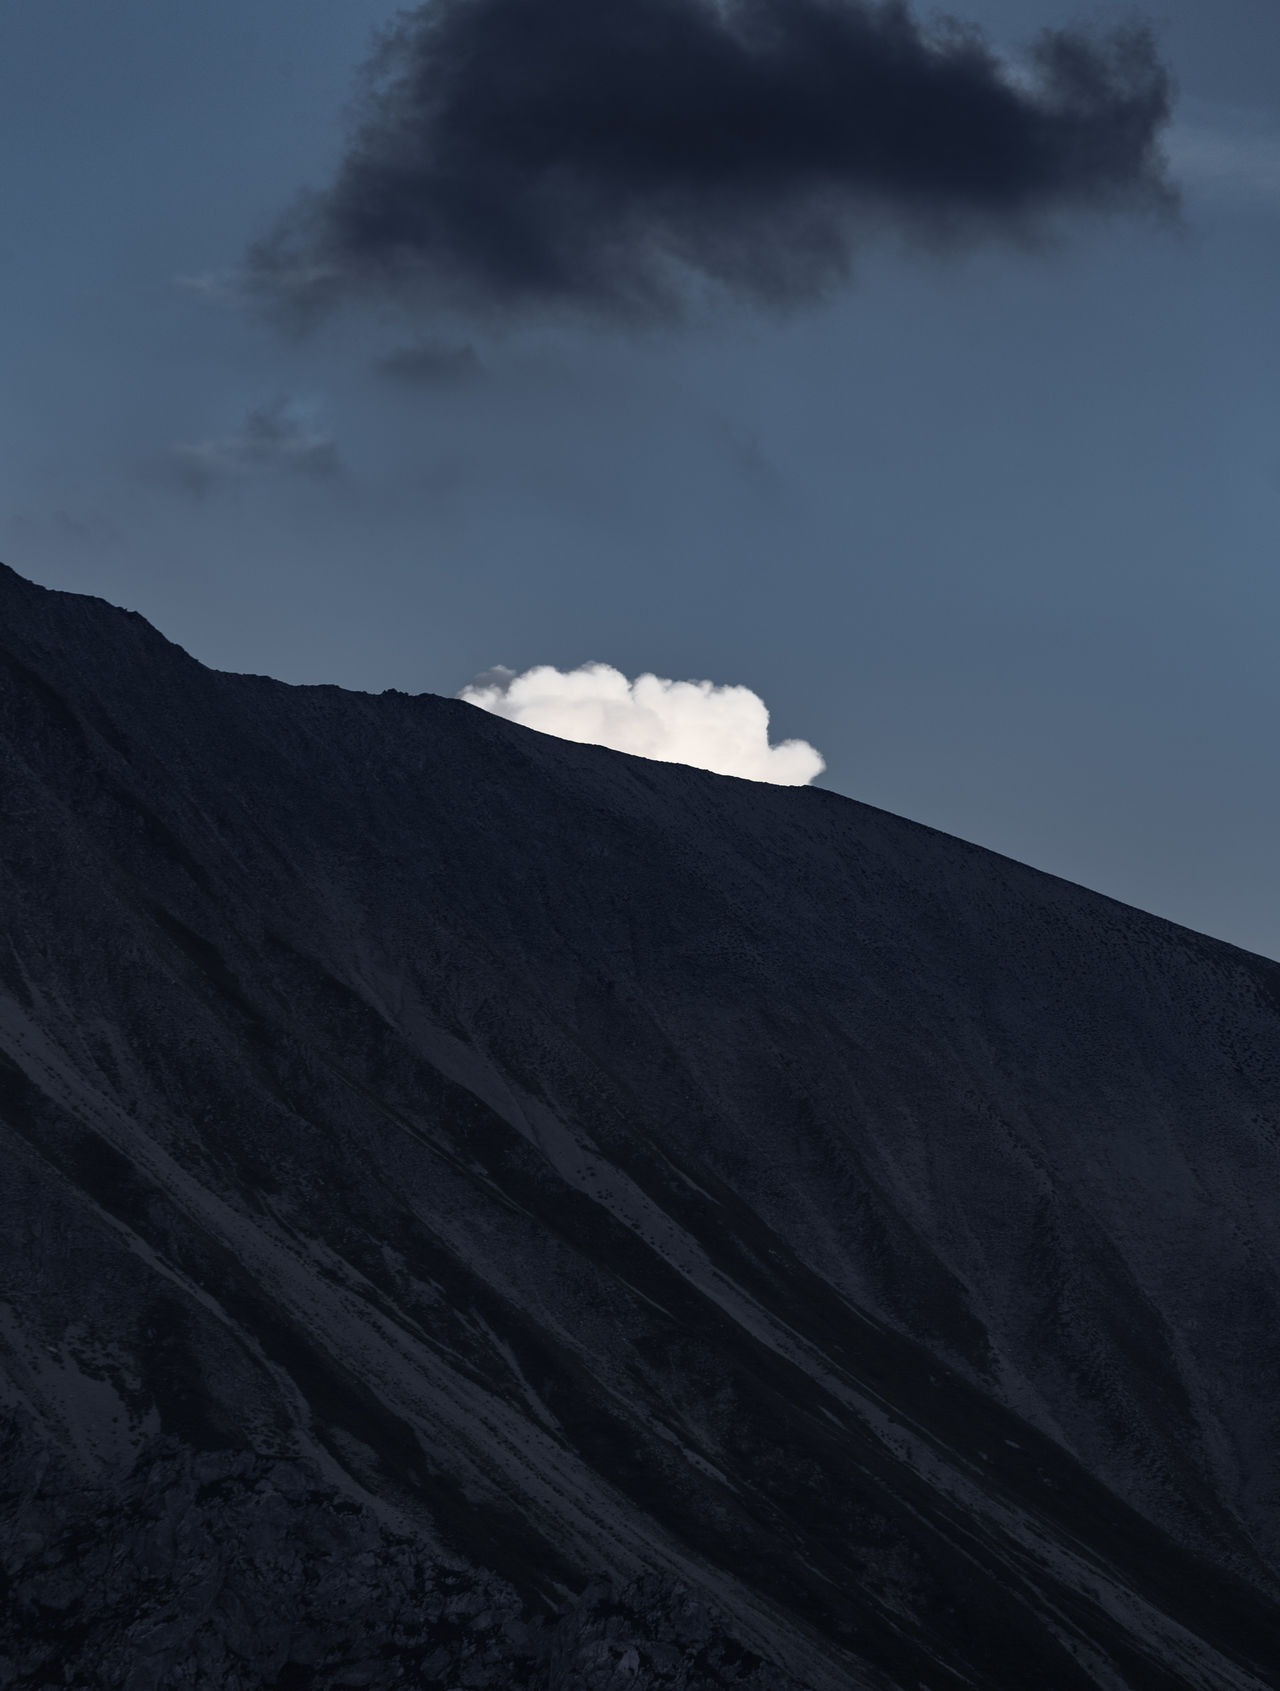 Perspectives on Nature Evening light evening sky Cloud mountain range mountain landscape #Nature #photography Landscape_Collection Nature photography naturelovers minimalmood minimalobsession minimal illumination close-up landscape_photography outdoors